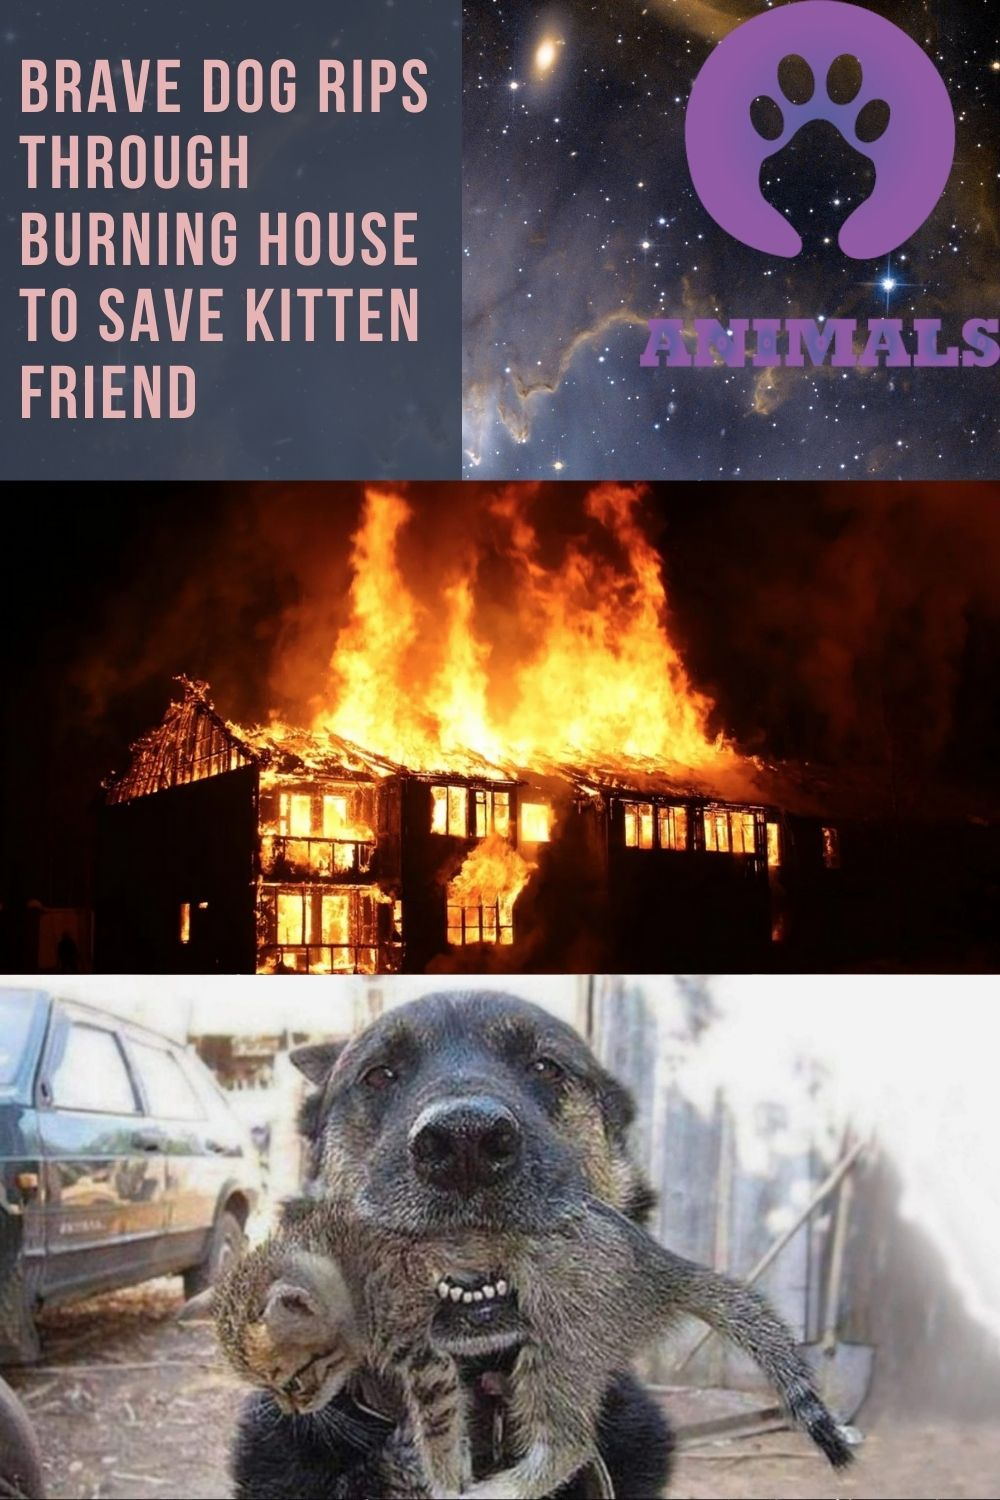 Halloween 2020 Burning House Brave dog rips through burning house to save kitten friend in 2020